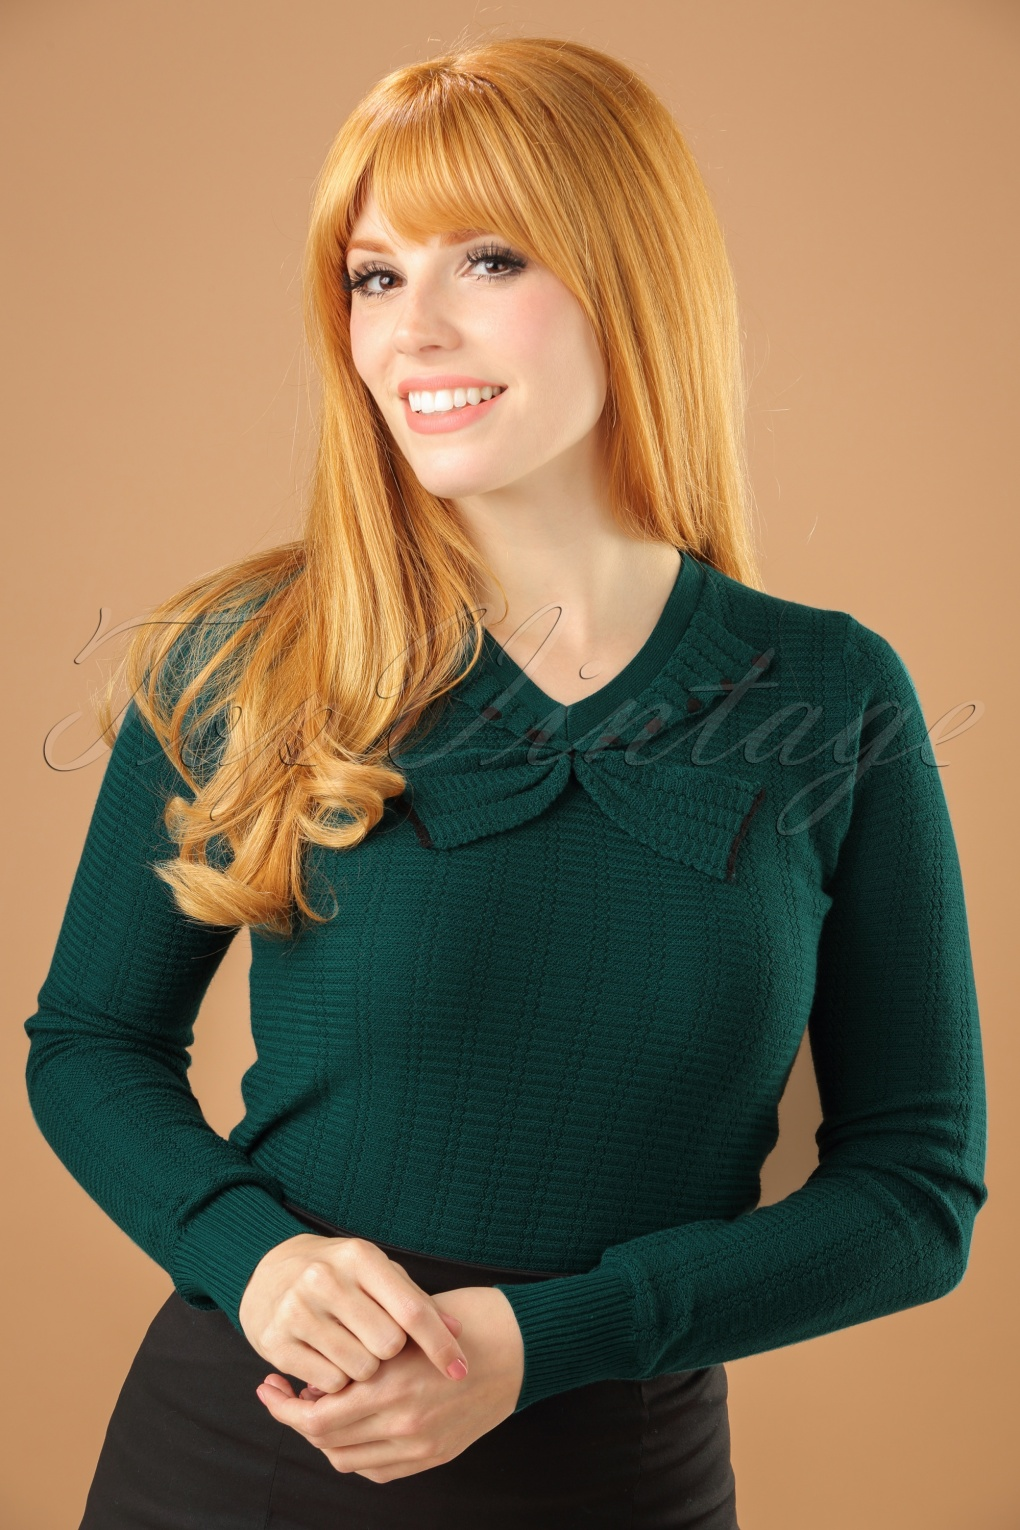 Vintage & Retro Shirts, Halter Tops, Blouses 50s Delight Bow Top in Dragonfly Green £72.50 AT vintagedancer.com